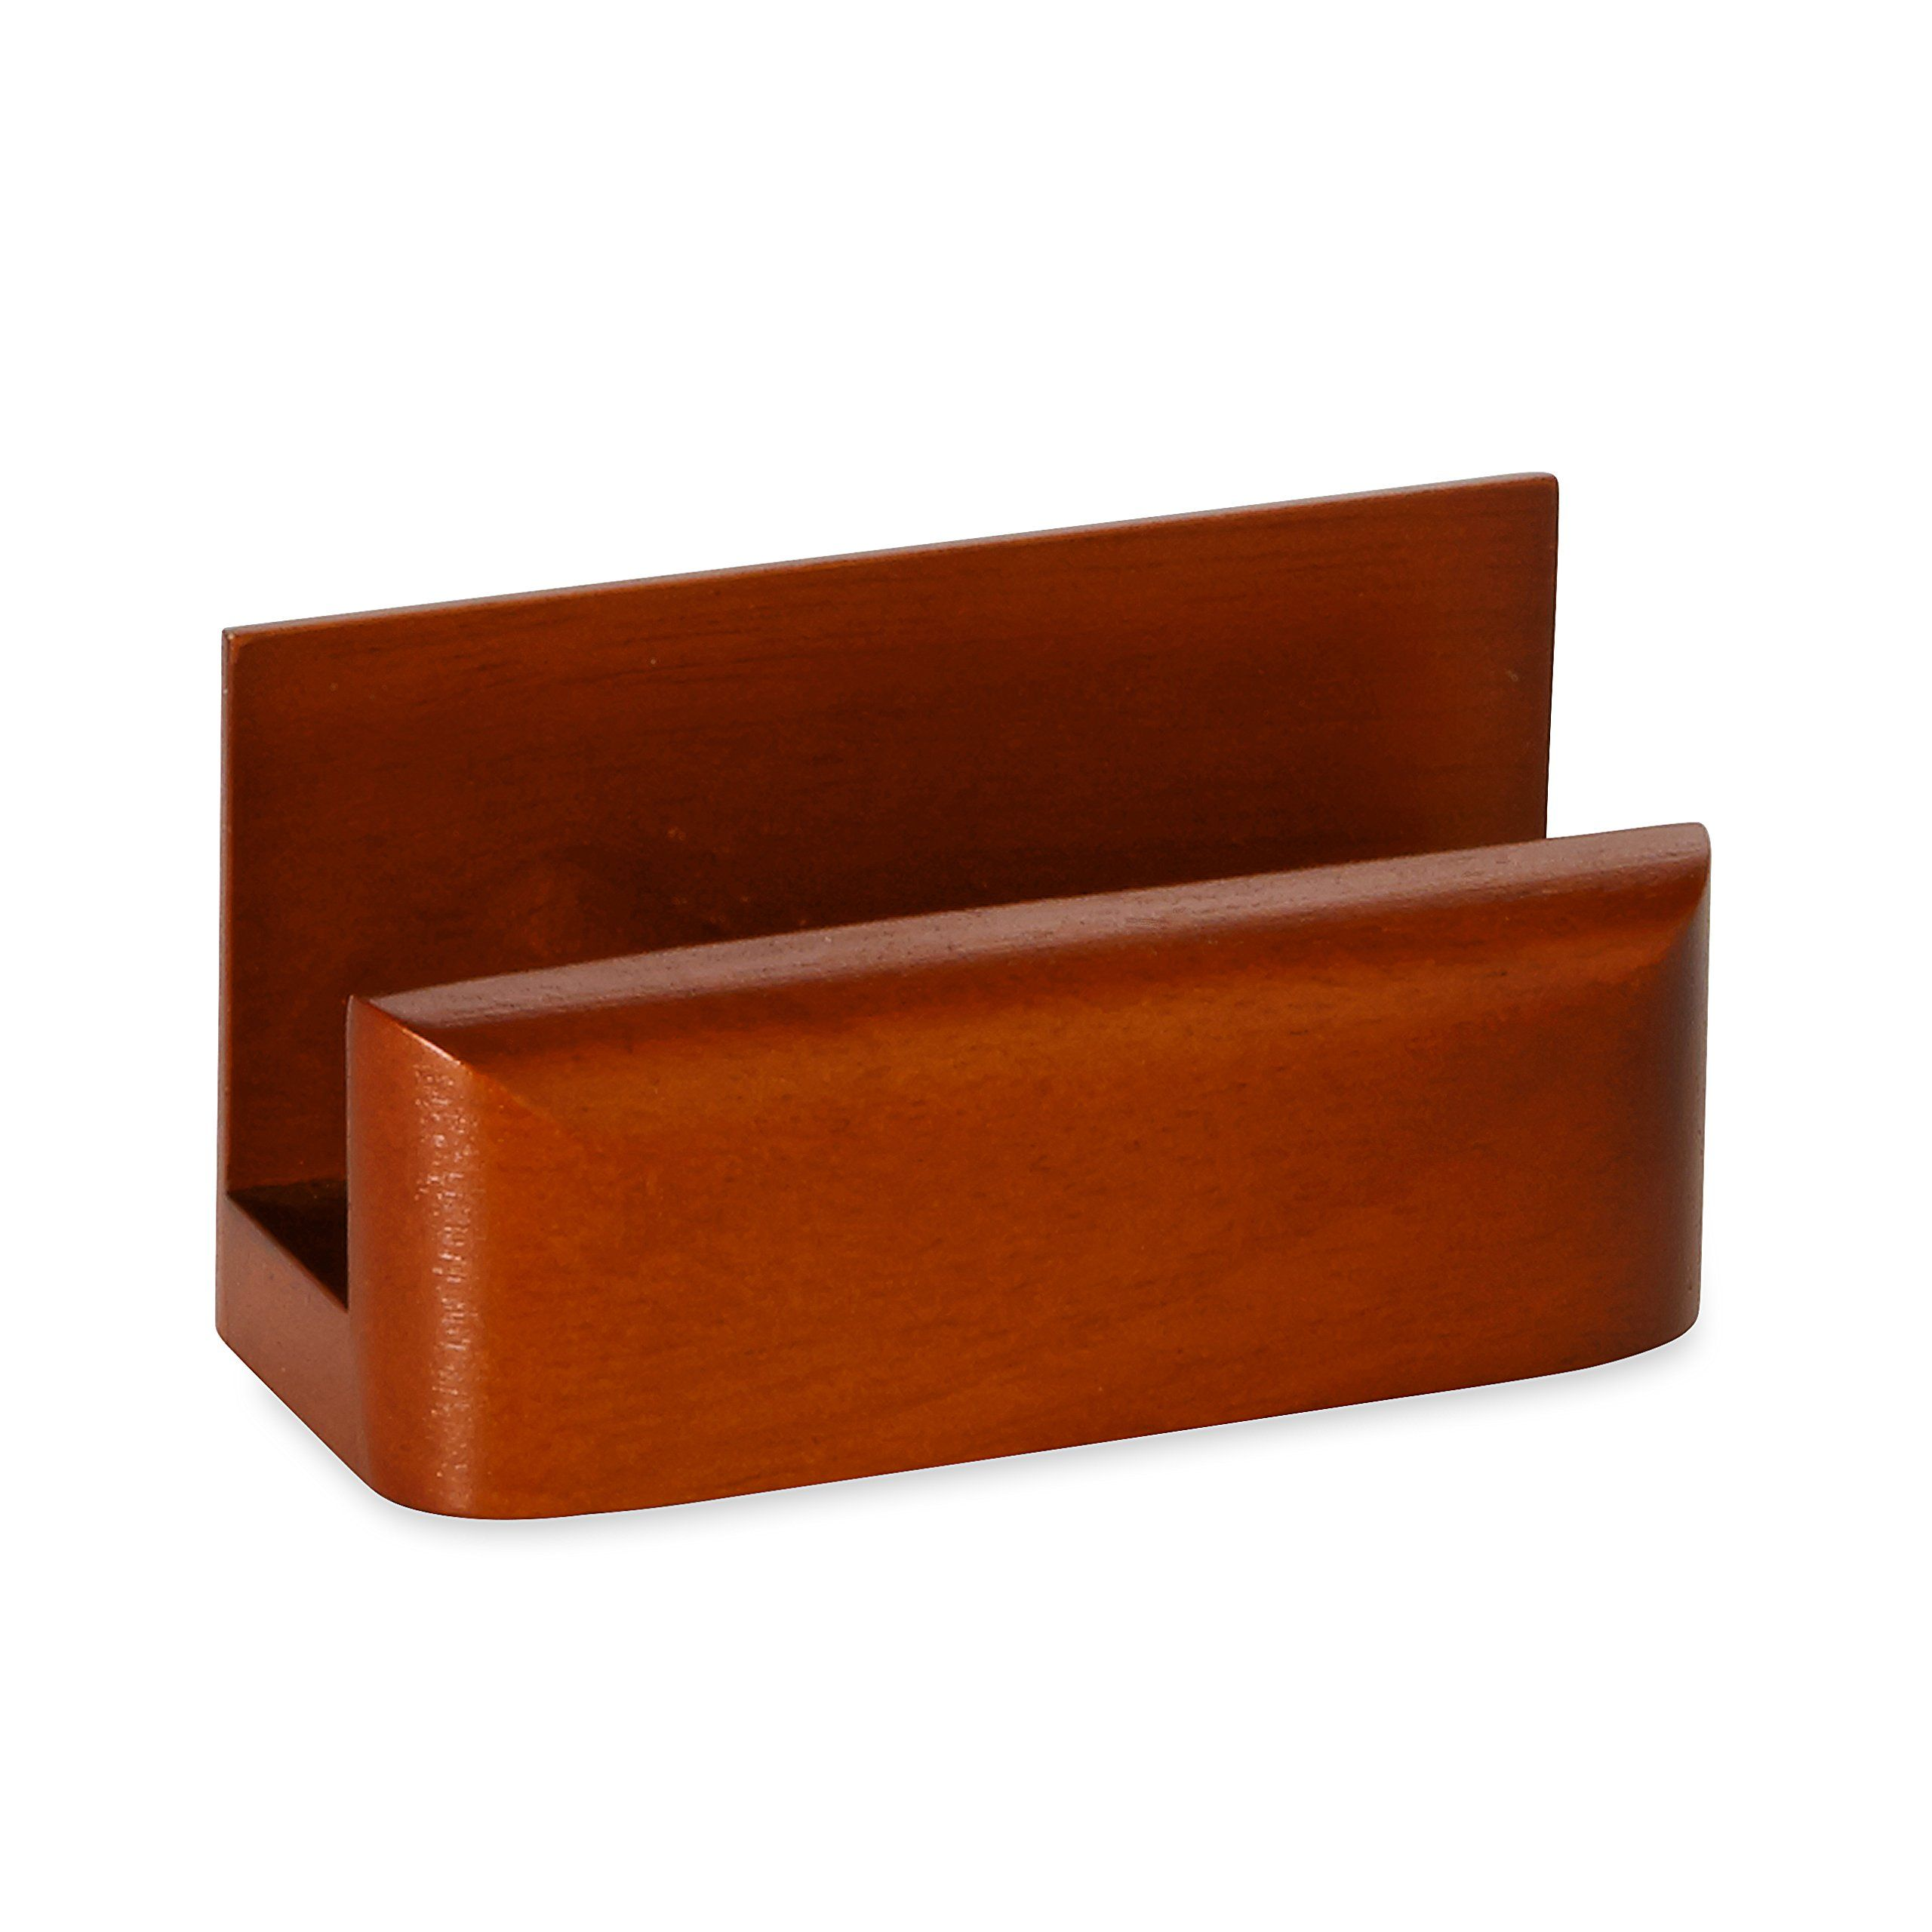 rolodex wood tones business card holder capacity 50 cards of 2 25